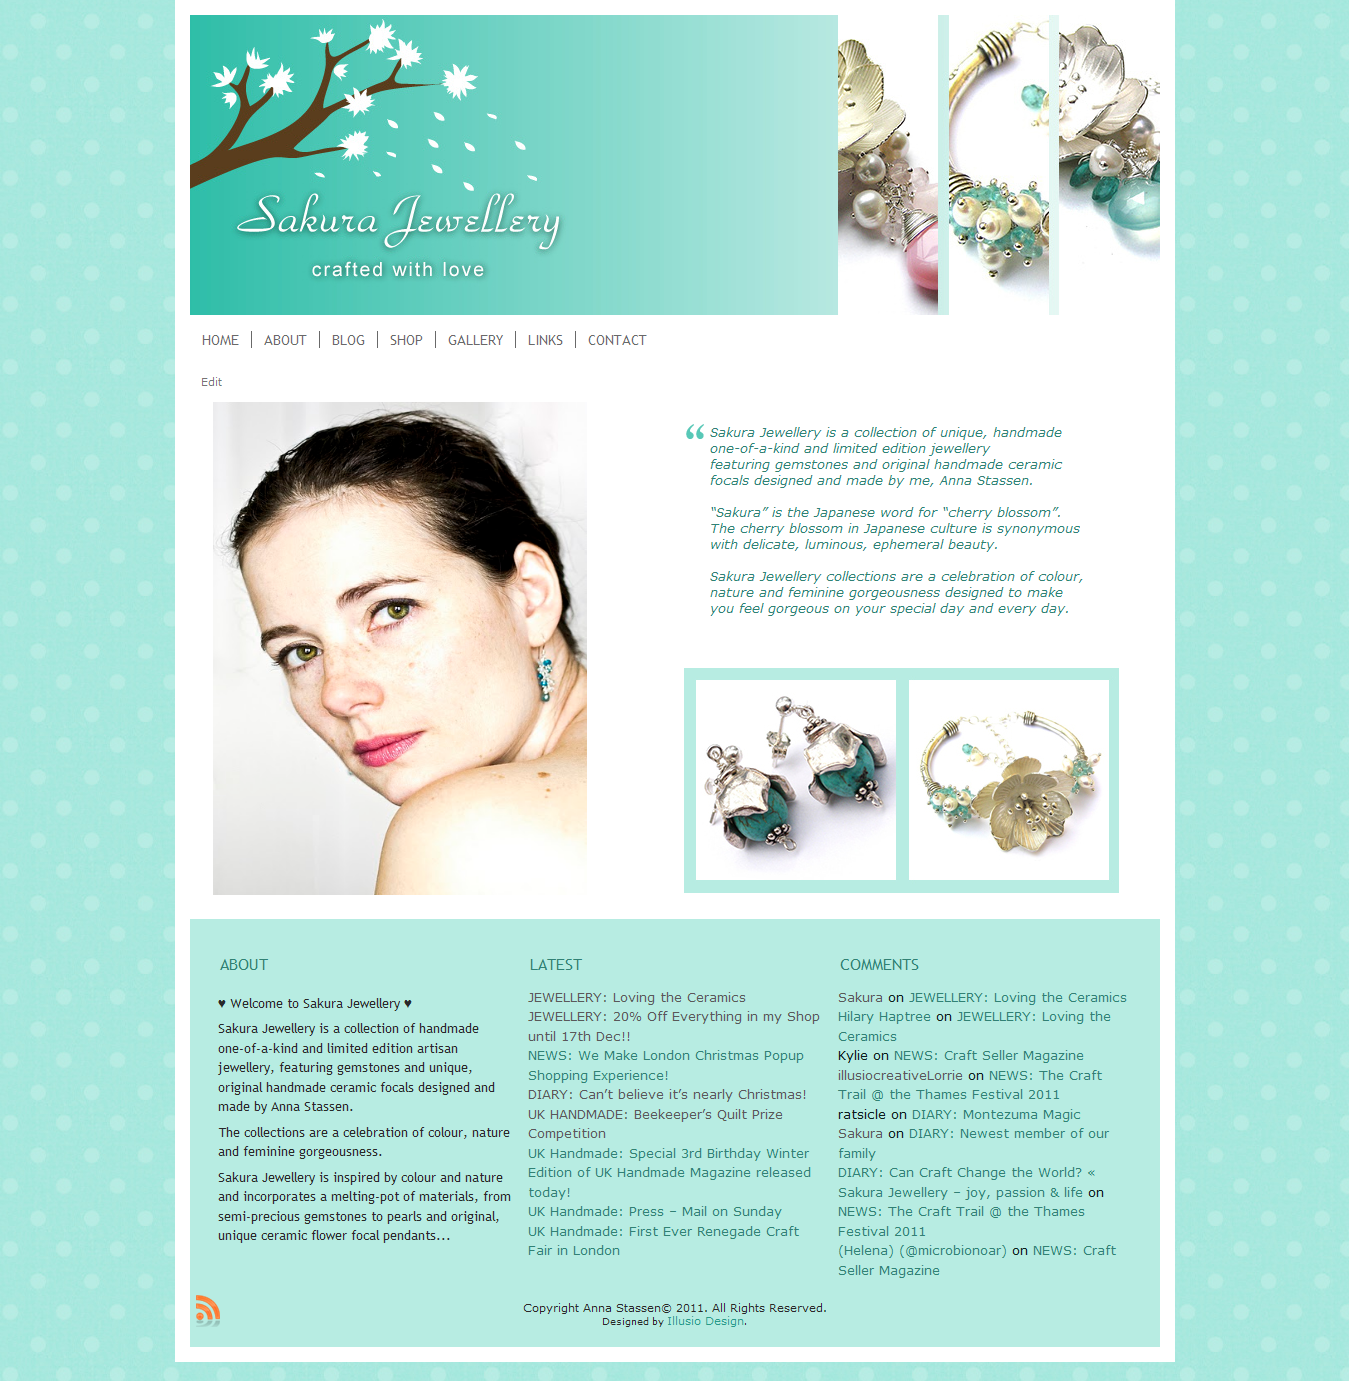 Sakura Jewellery - Limited Edition Handmade Artisan Jewellery